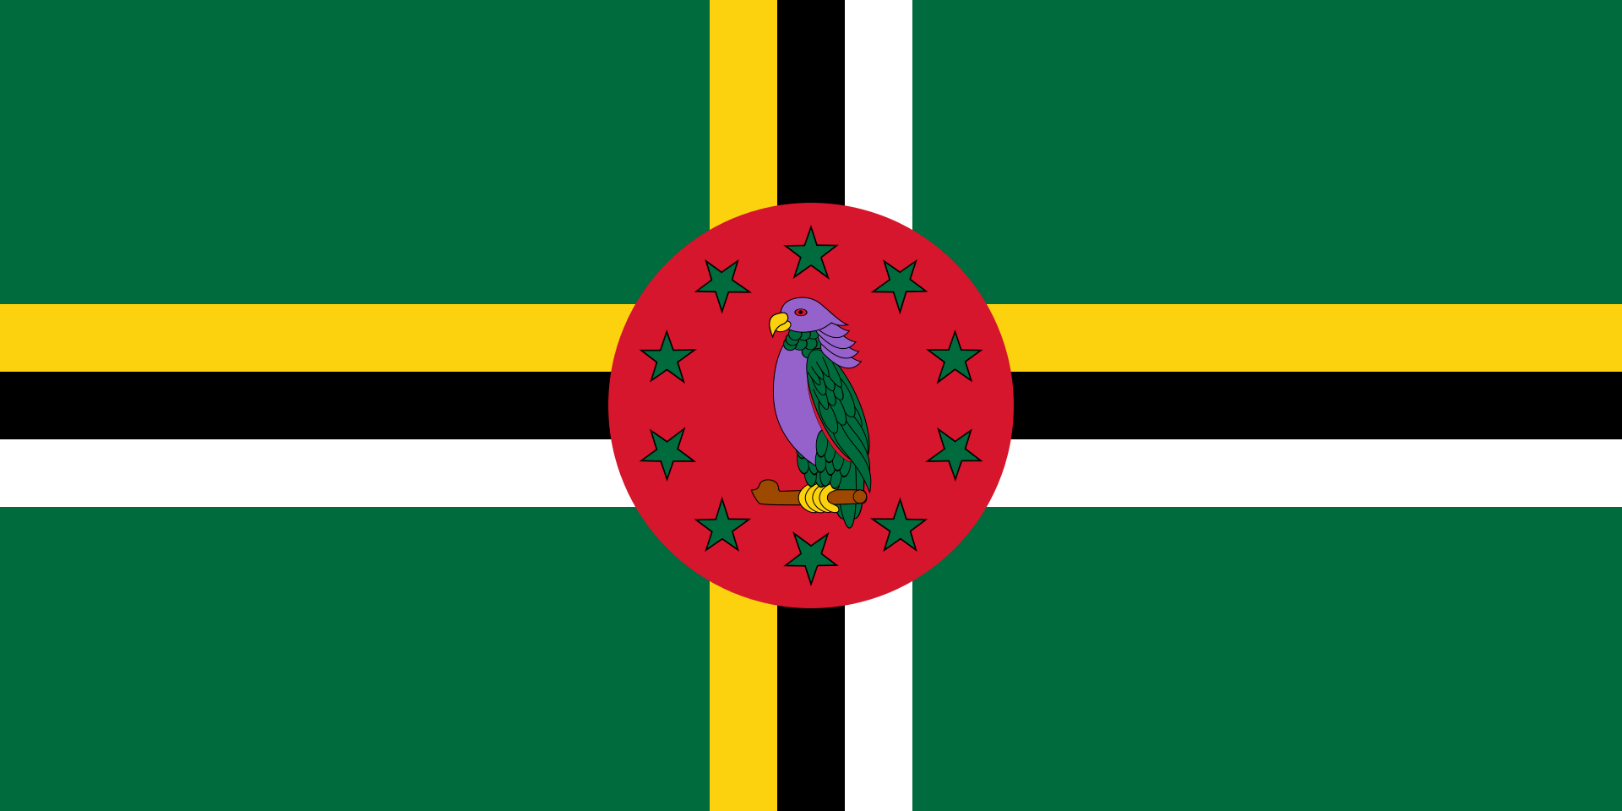 Flagge im Querformat Land Dominica 150x100 cm